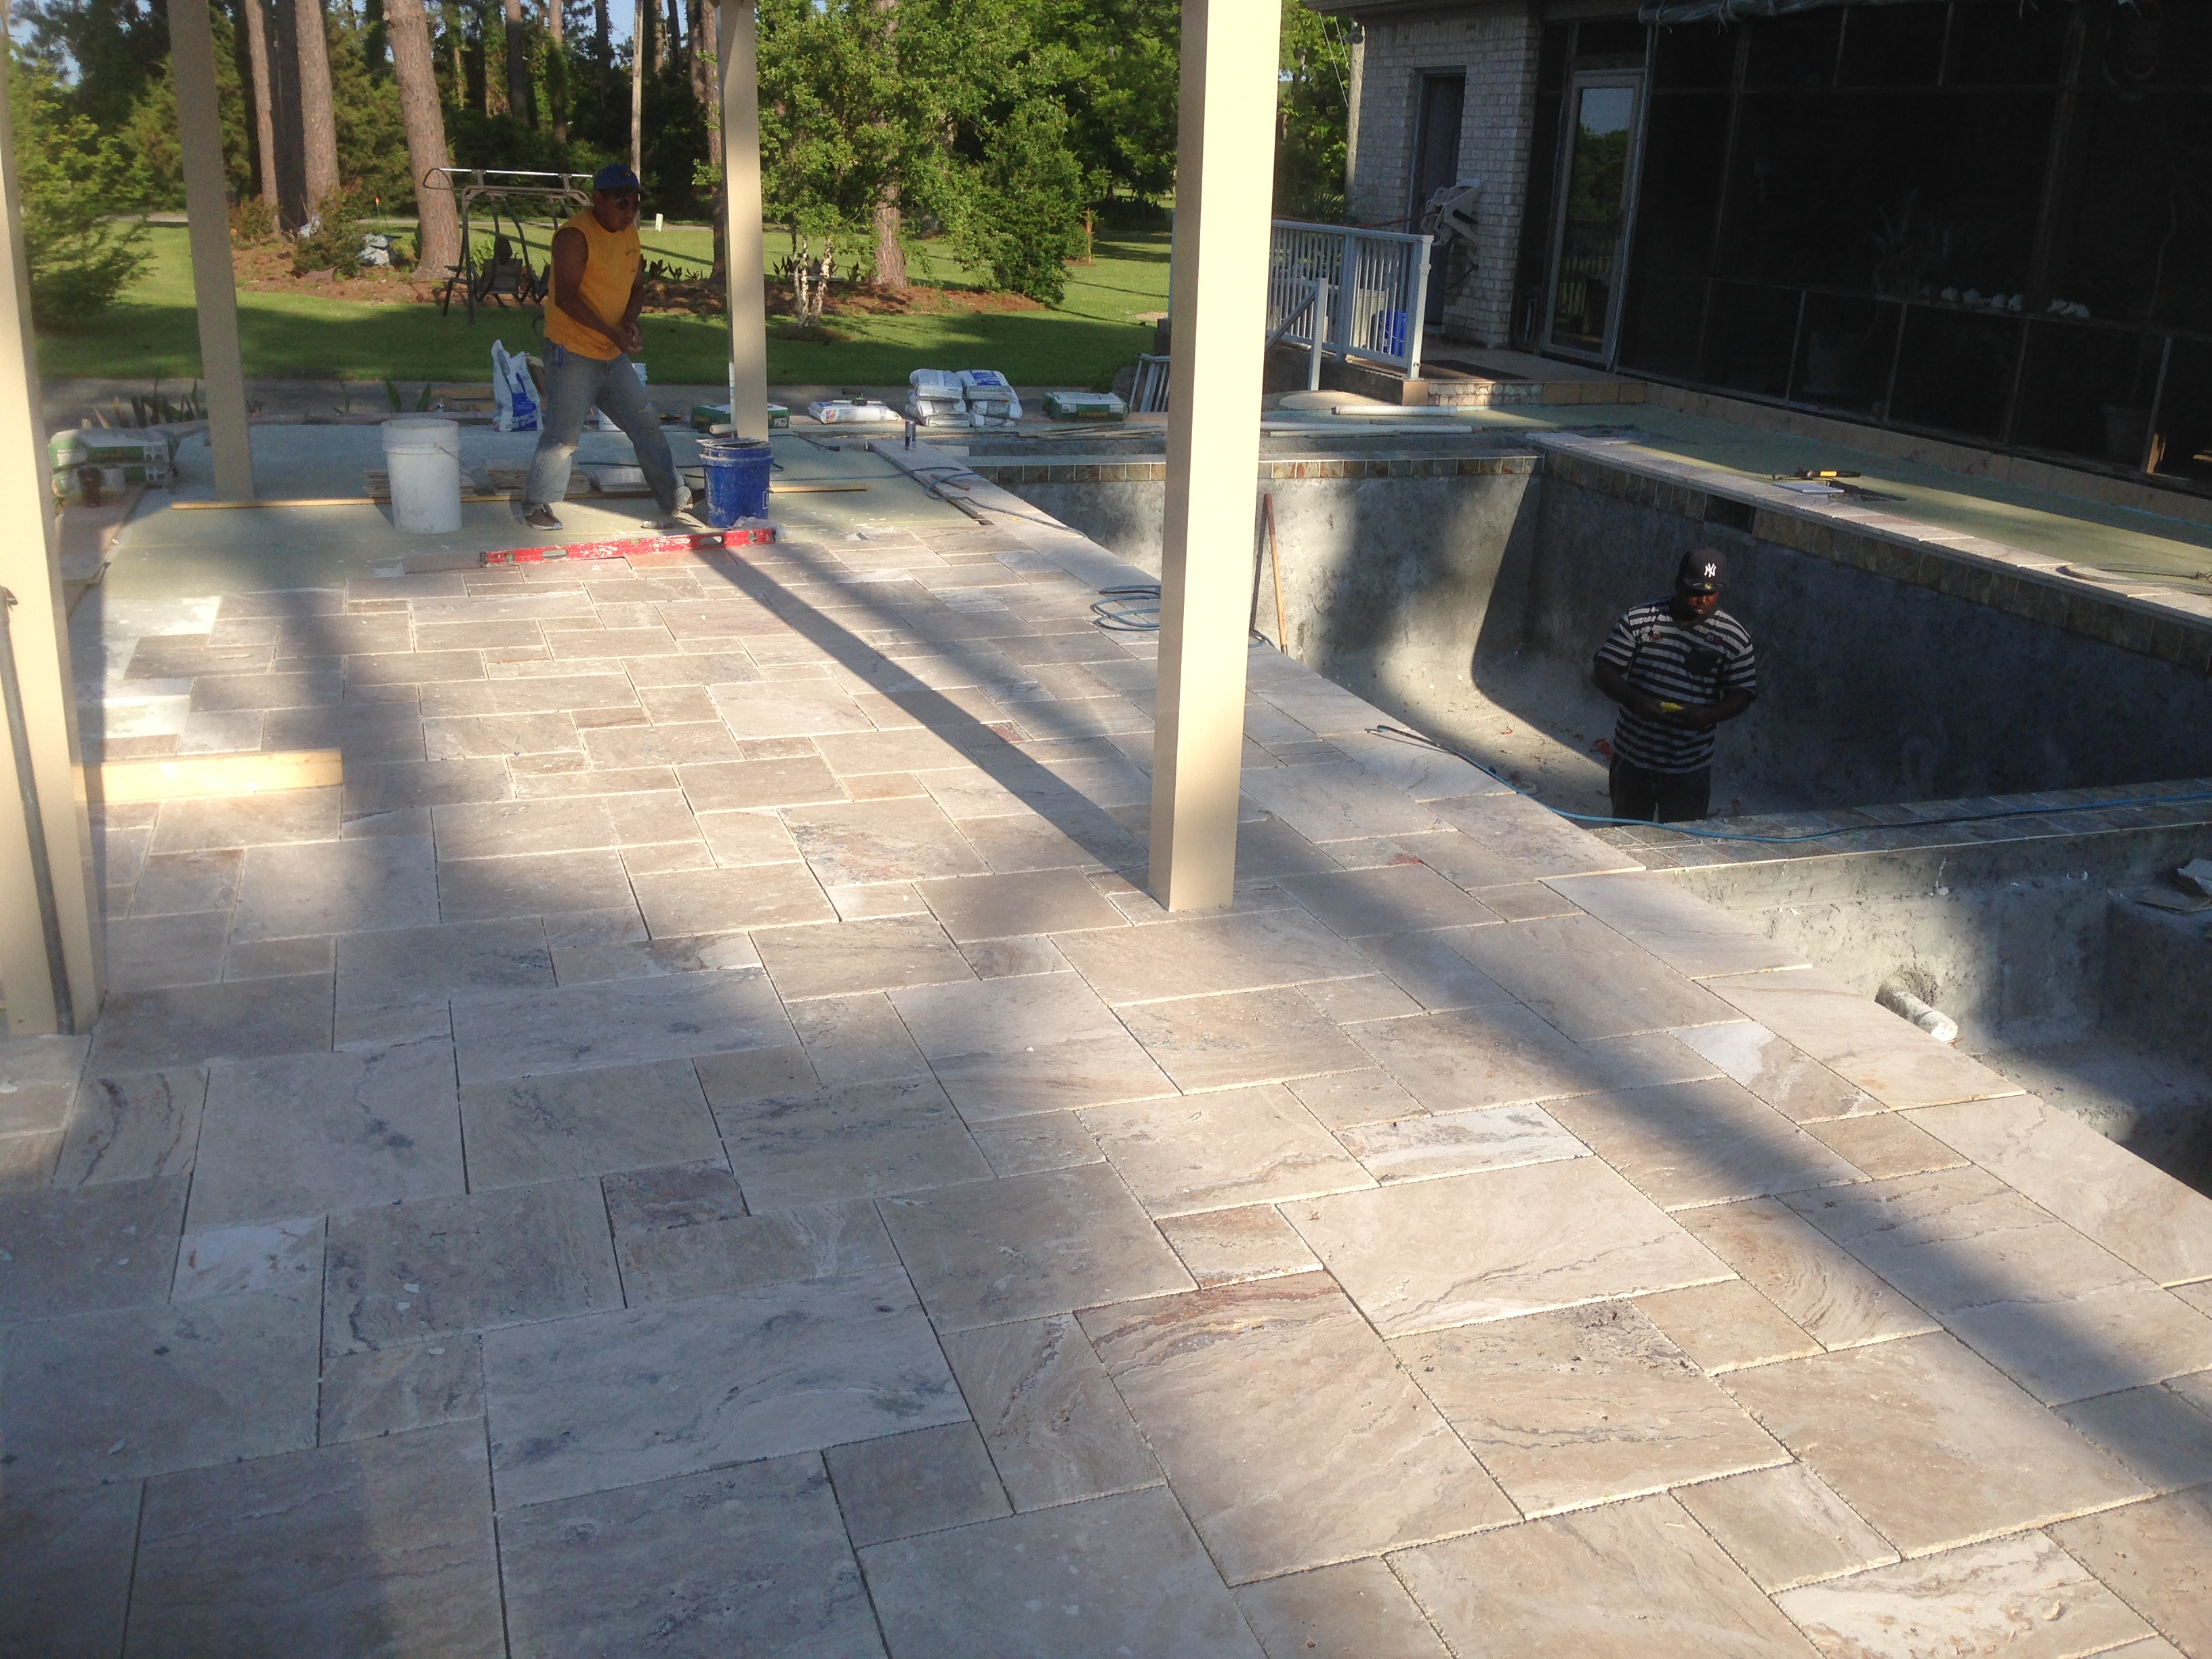 Swimming pool renovations commercial and residential travertine tile install going well almost ready for grout dailygadgetfo Choice Image